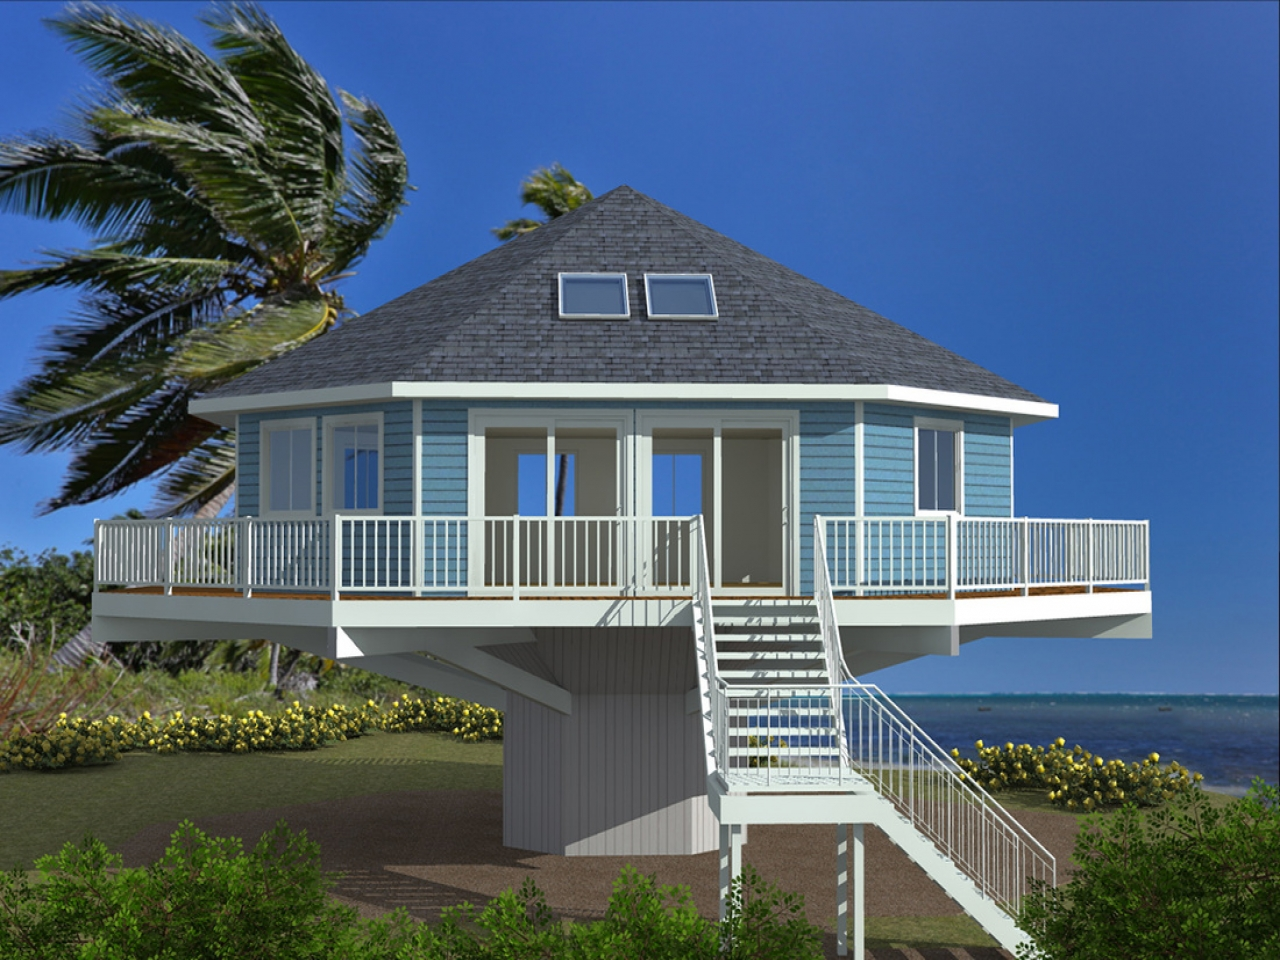 Spanish hacienda house plans house plans for homes on for Modular beach homes on pilings